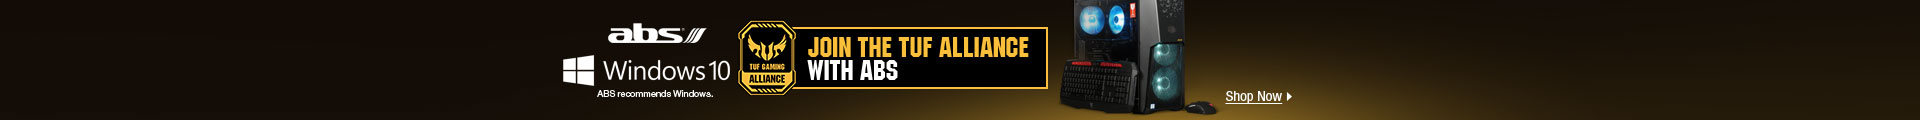 abs JOIN THE TUF ALLIANCE WITH ABS